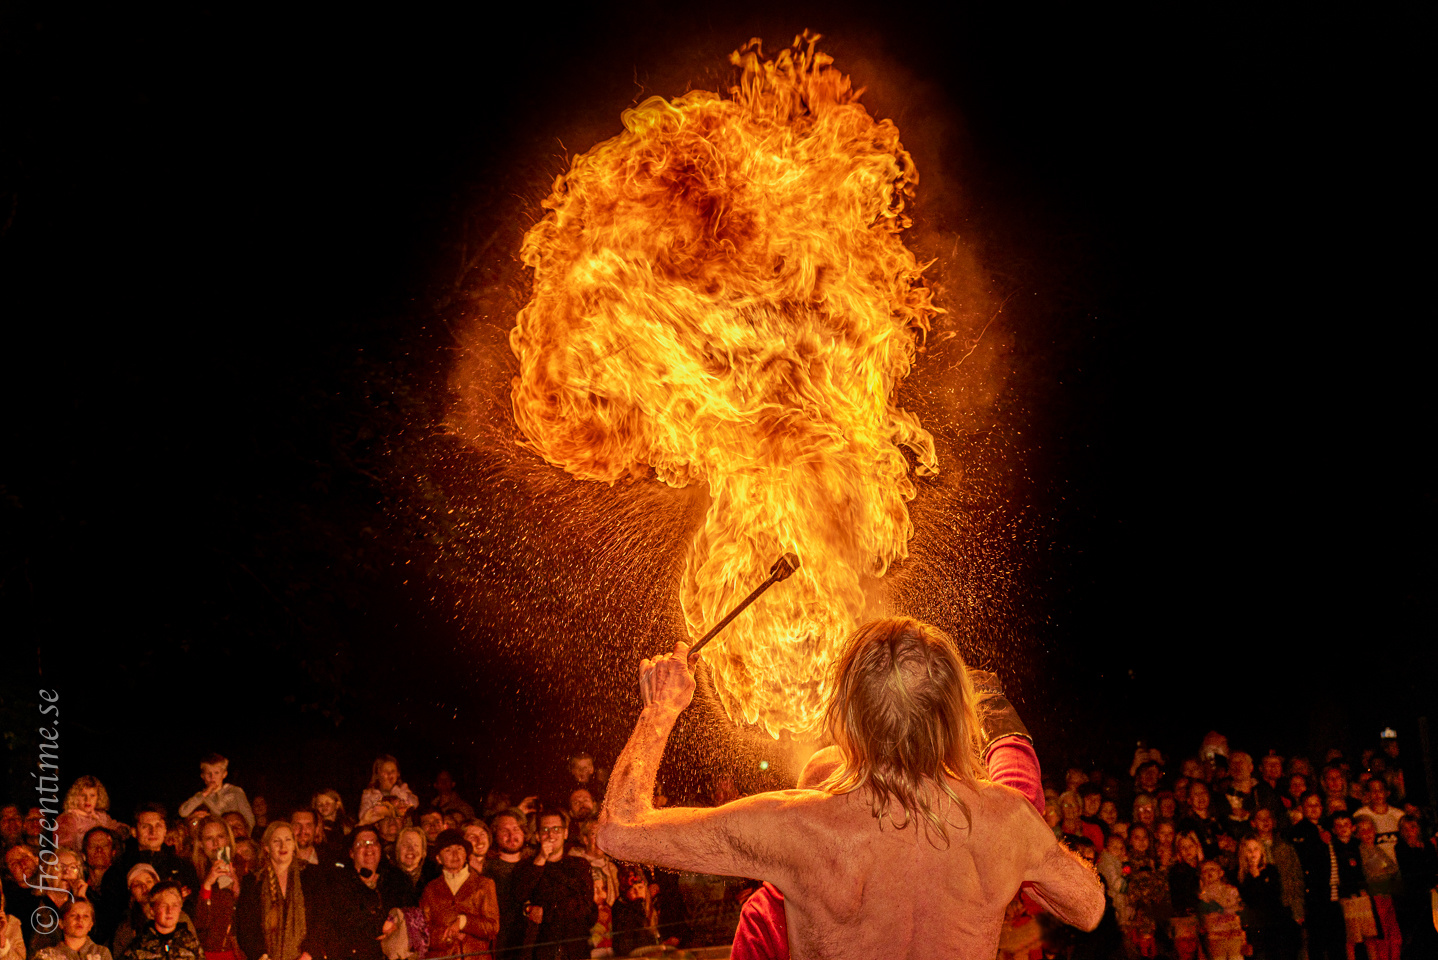 The fire breather by Mark Harris